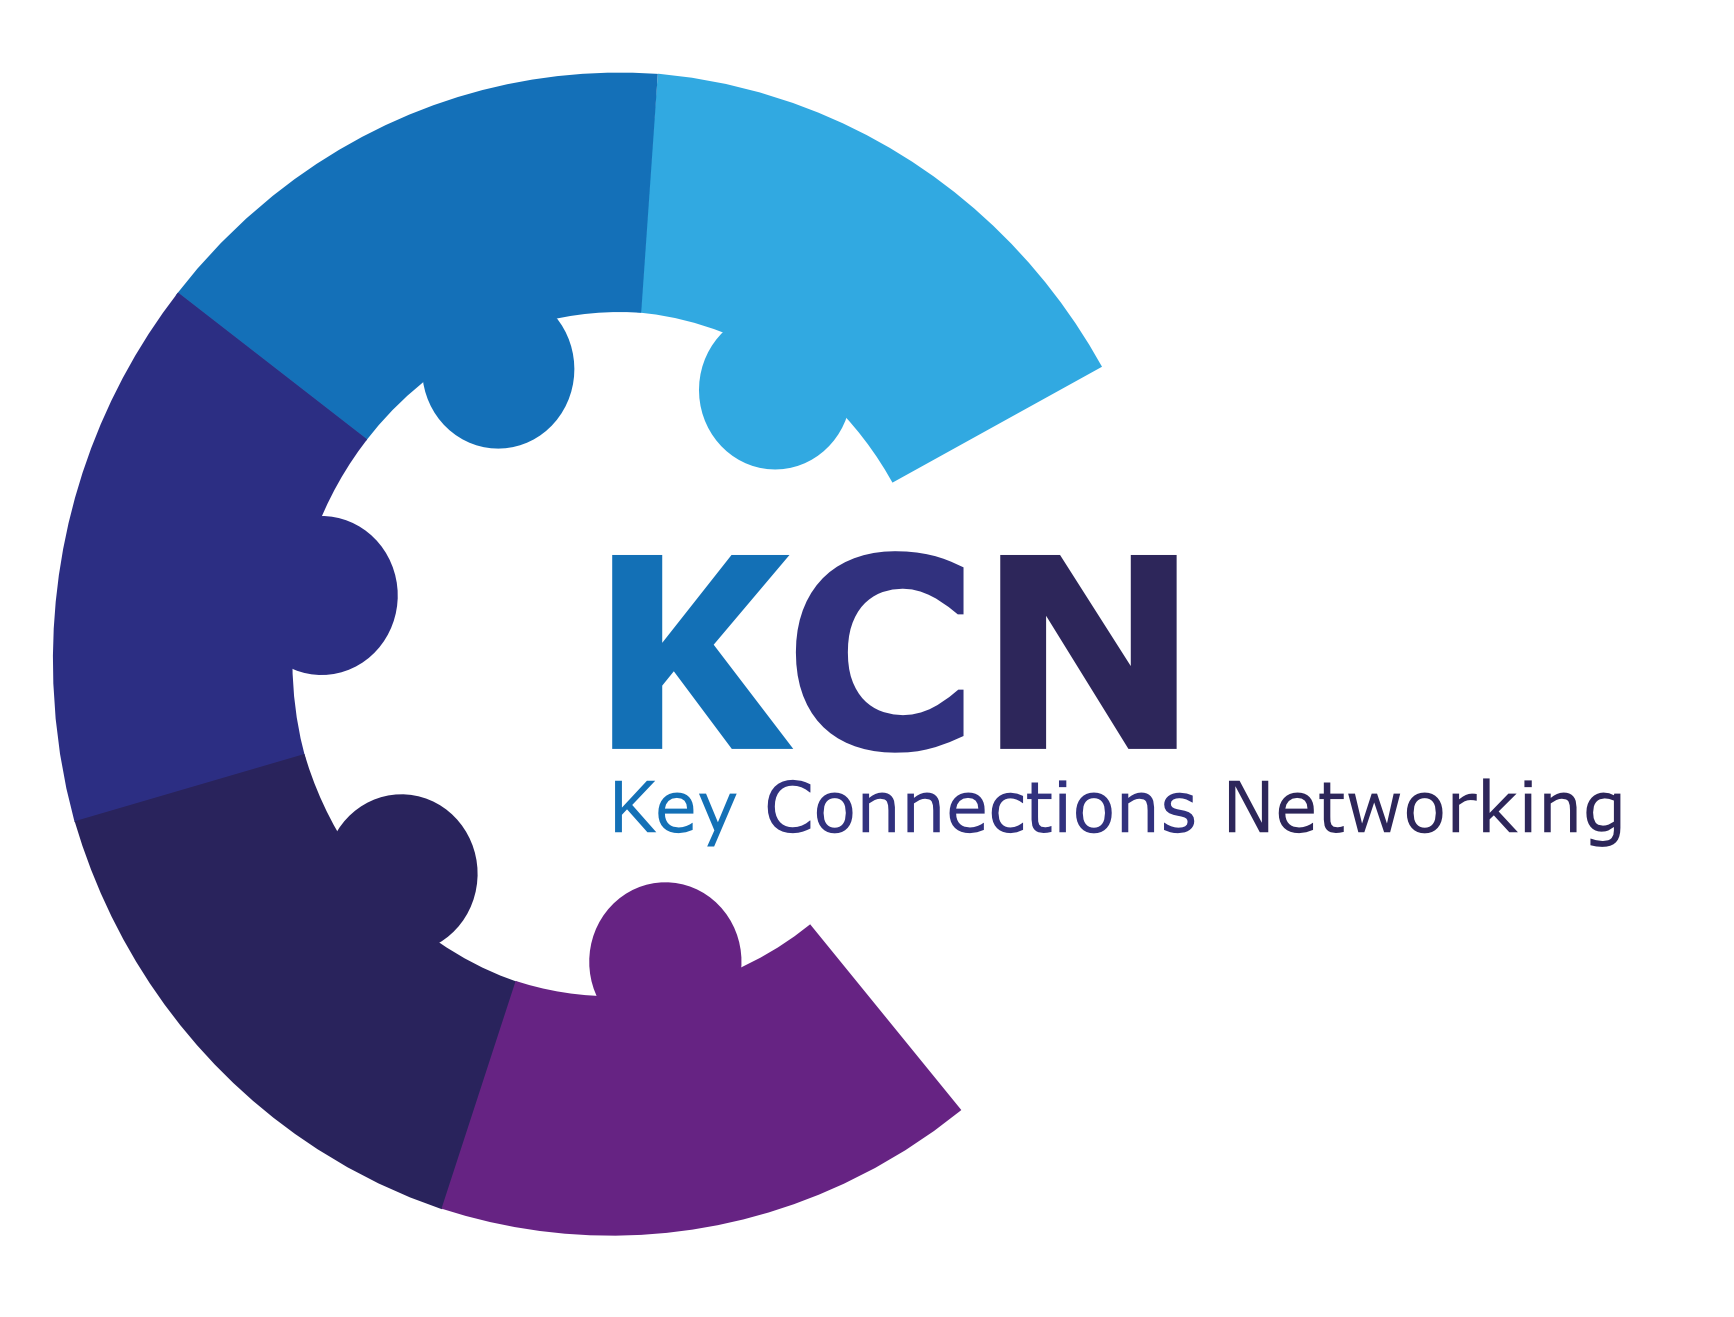 Key connections Networking Logo in Whetstone and Totterridge